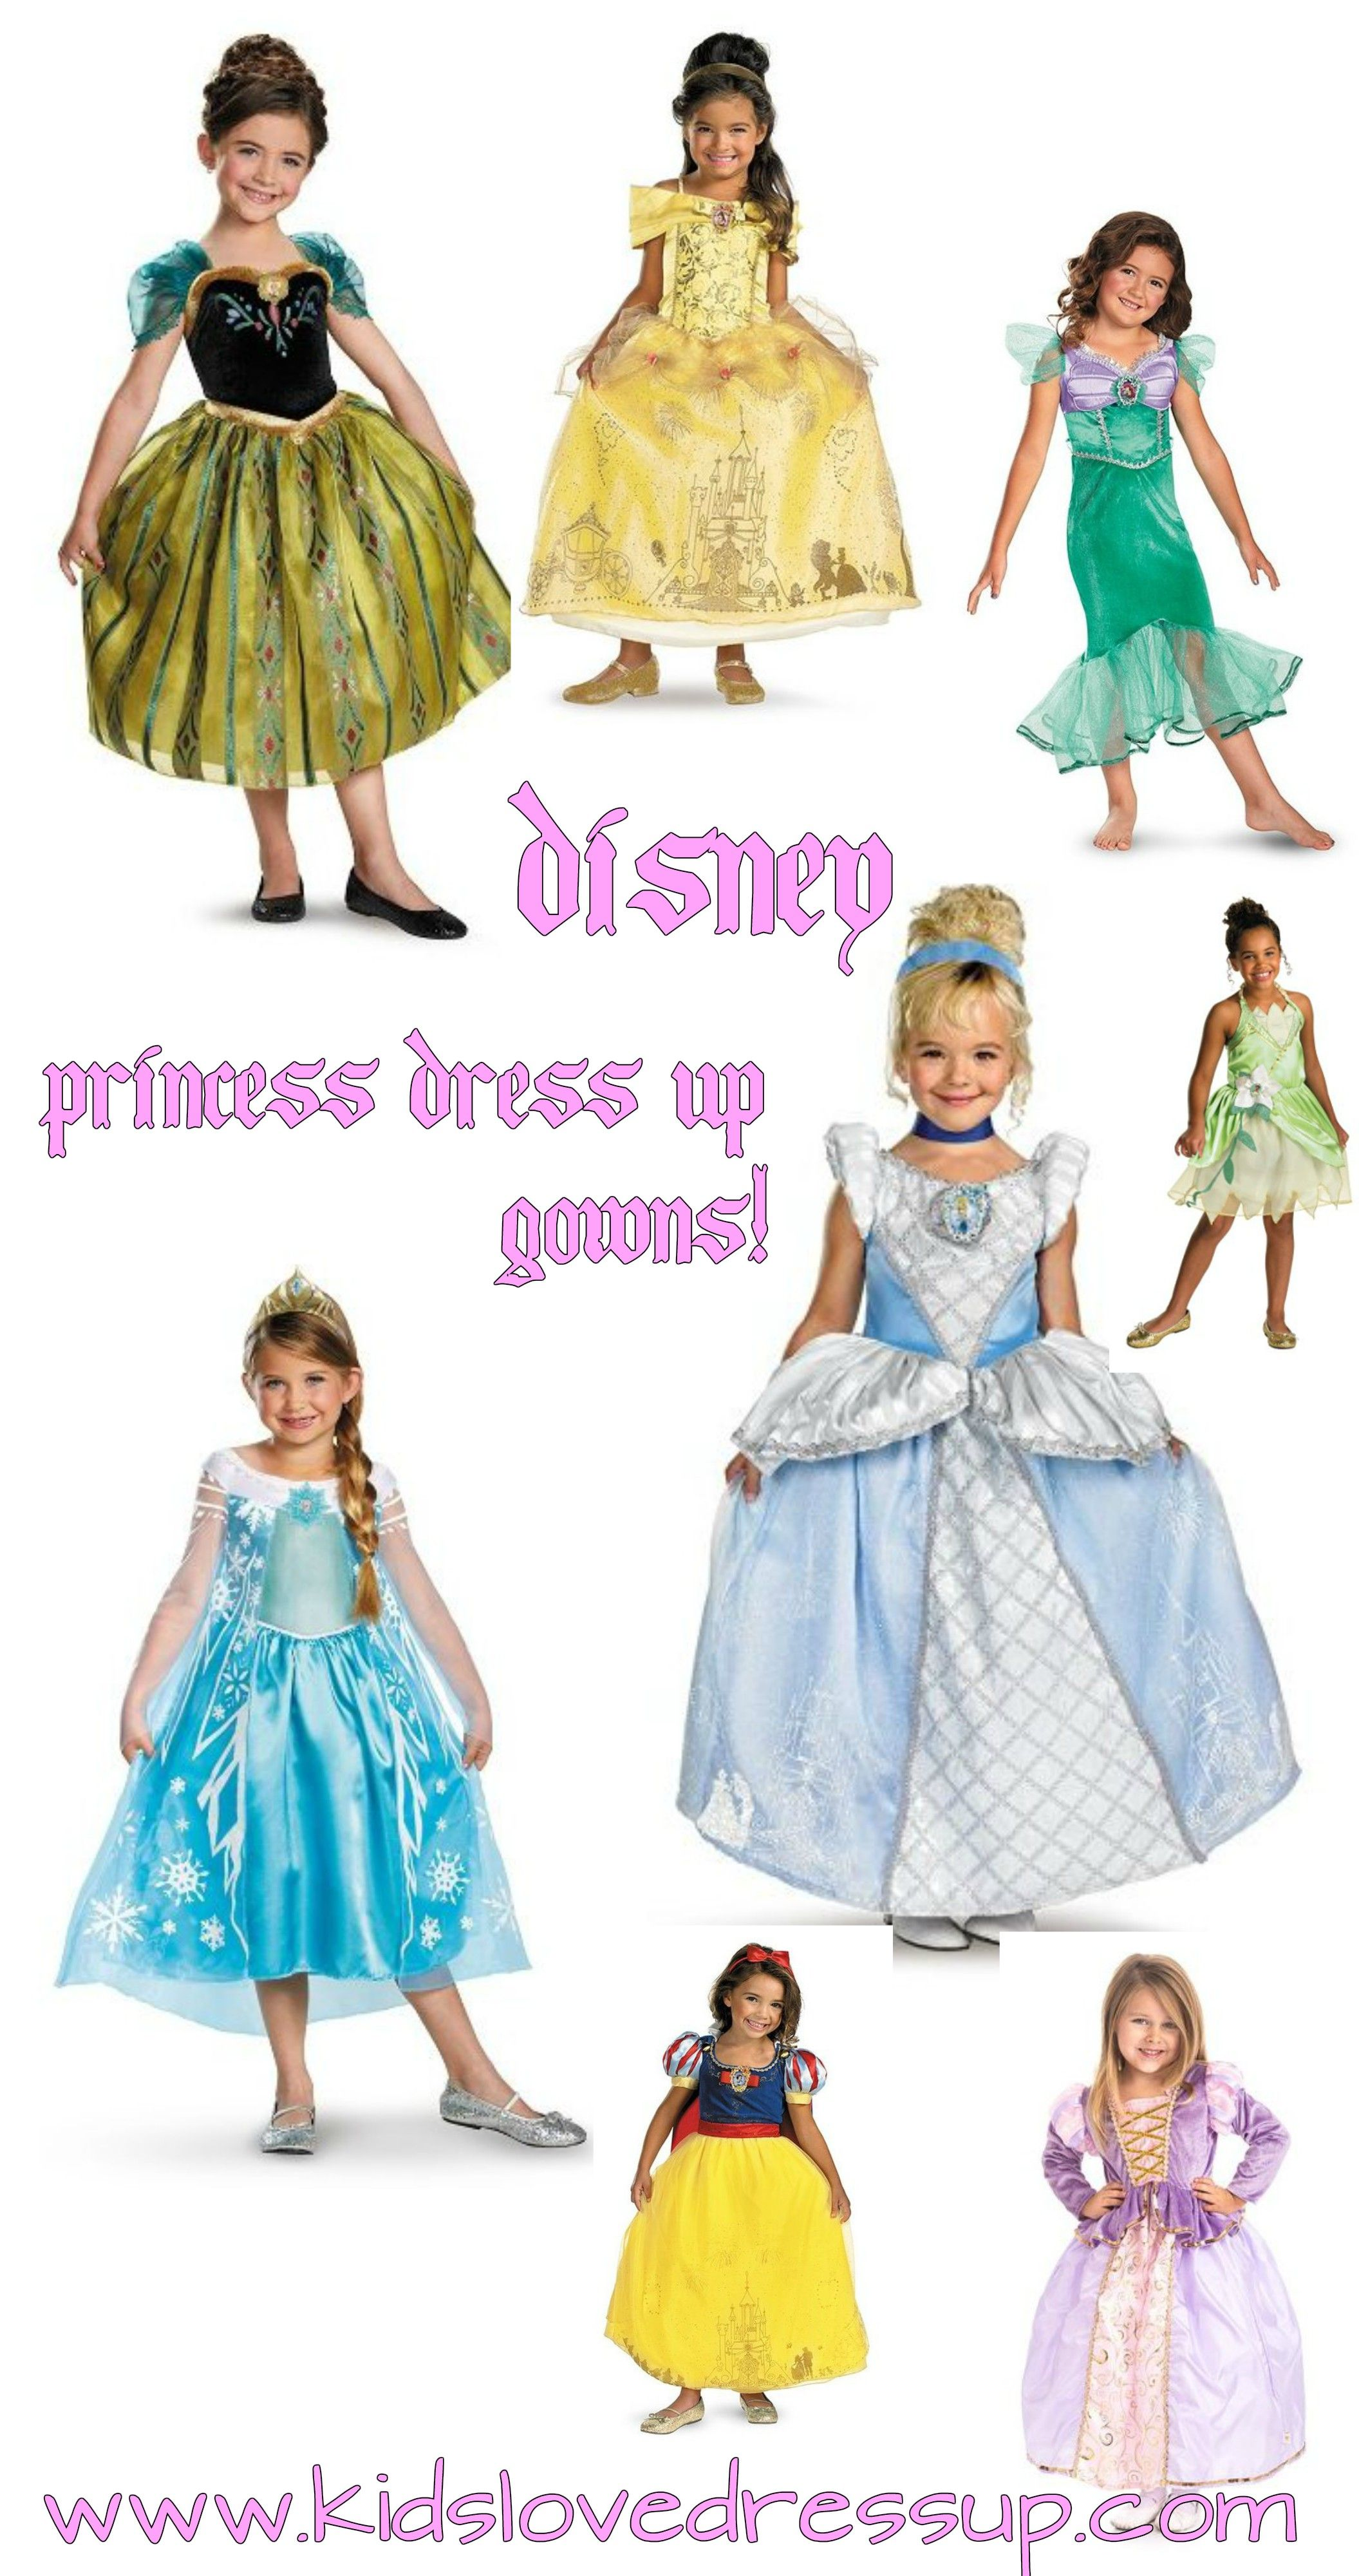 Disney Princess Gowns - they are all the rage, and they get played